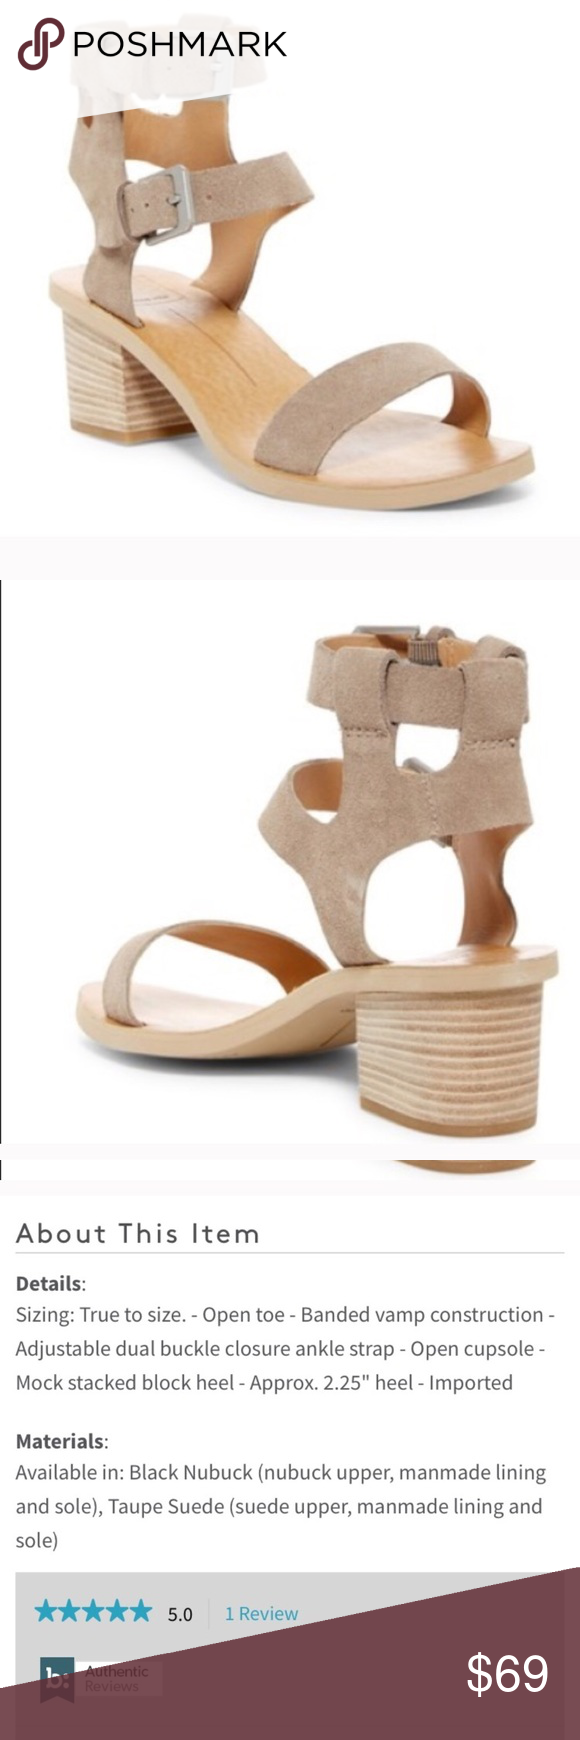 5c8ae96fcd80 NWT Dolce vita west dual suede block heel sandals NEW IN BOX Dolce Vita  Shoes Sandals